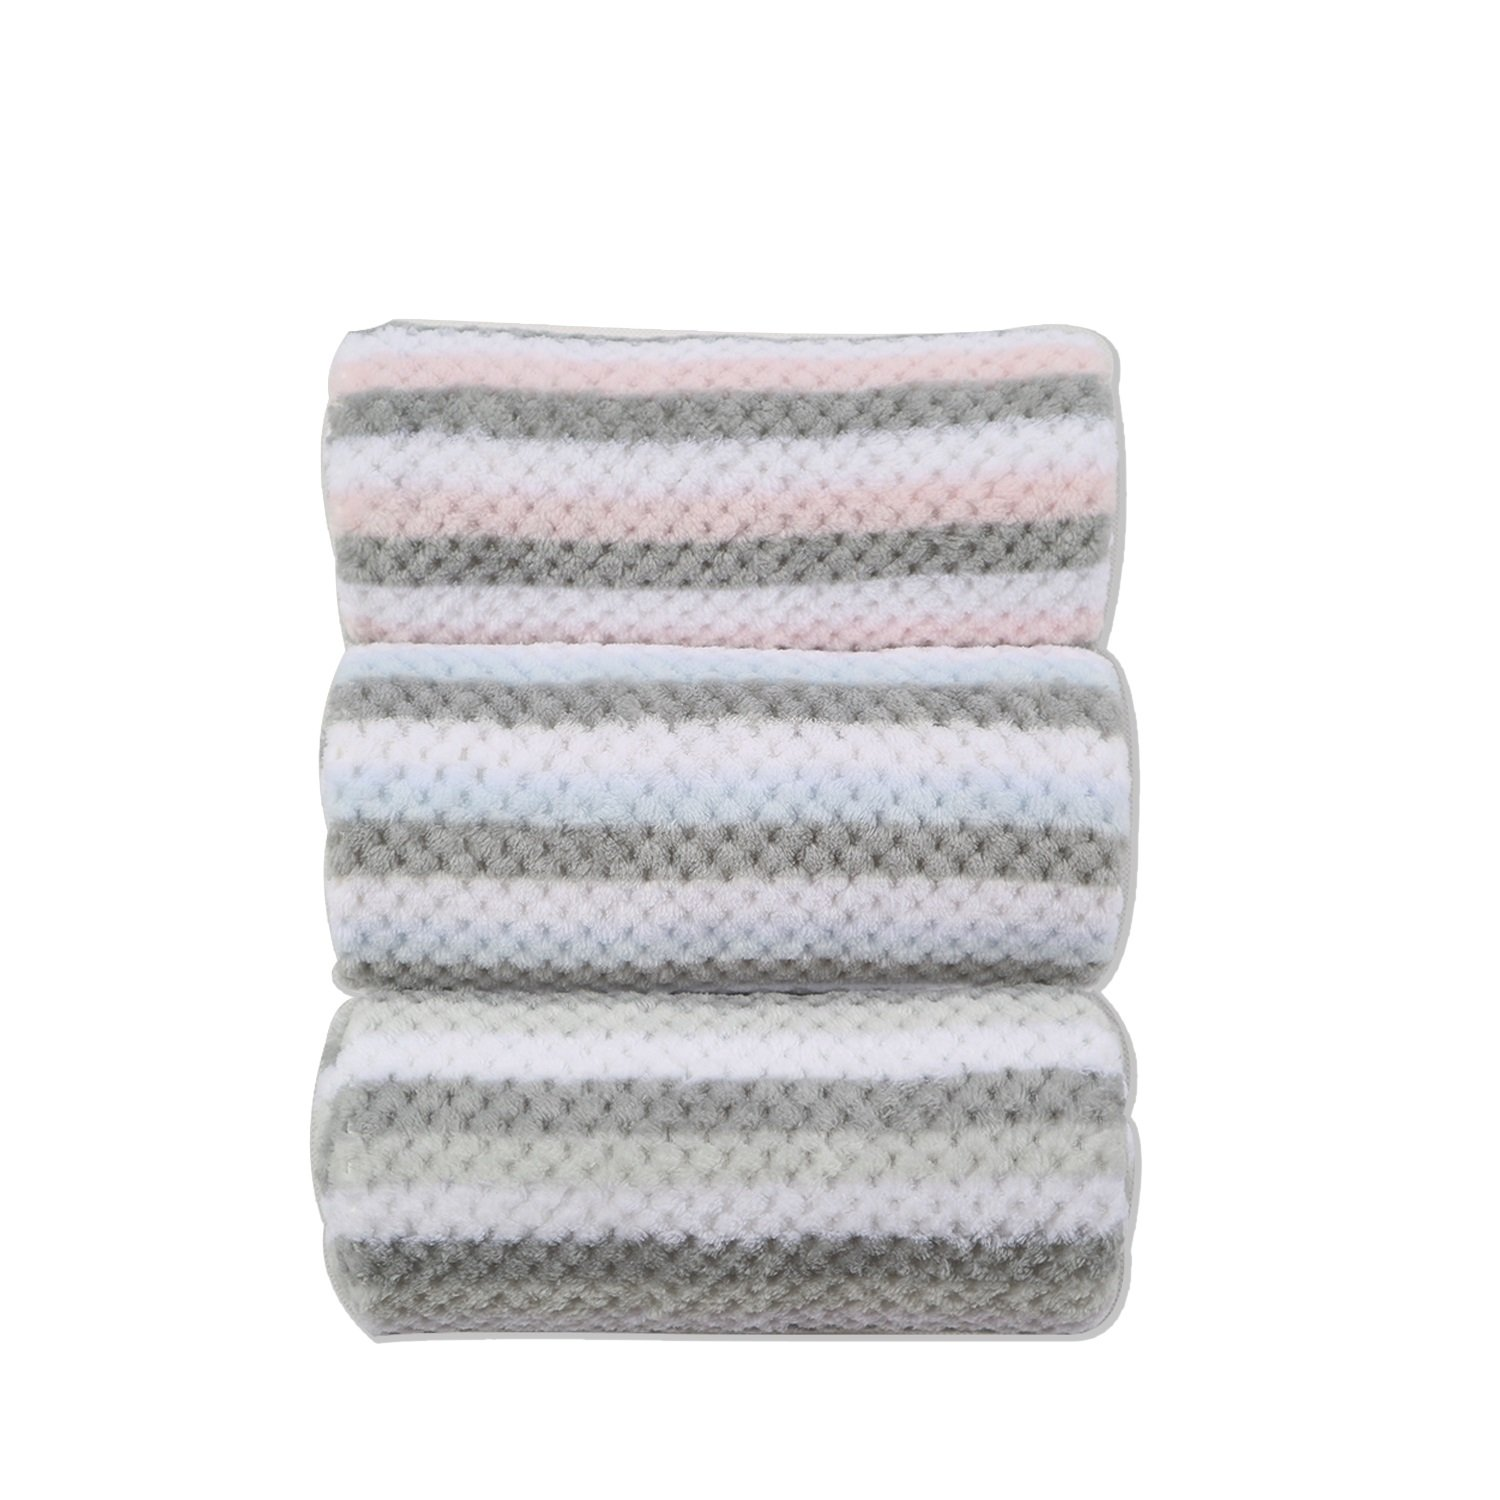 Urbestc Newborn Baby Blanket Unisex, Flannel Receiving Blankets, Softer and Warmer, 30 x 36, 3 Count